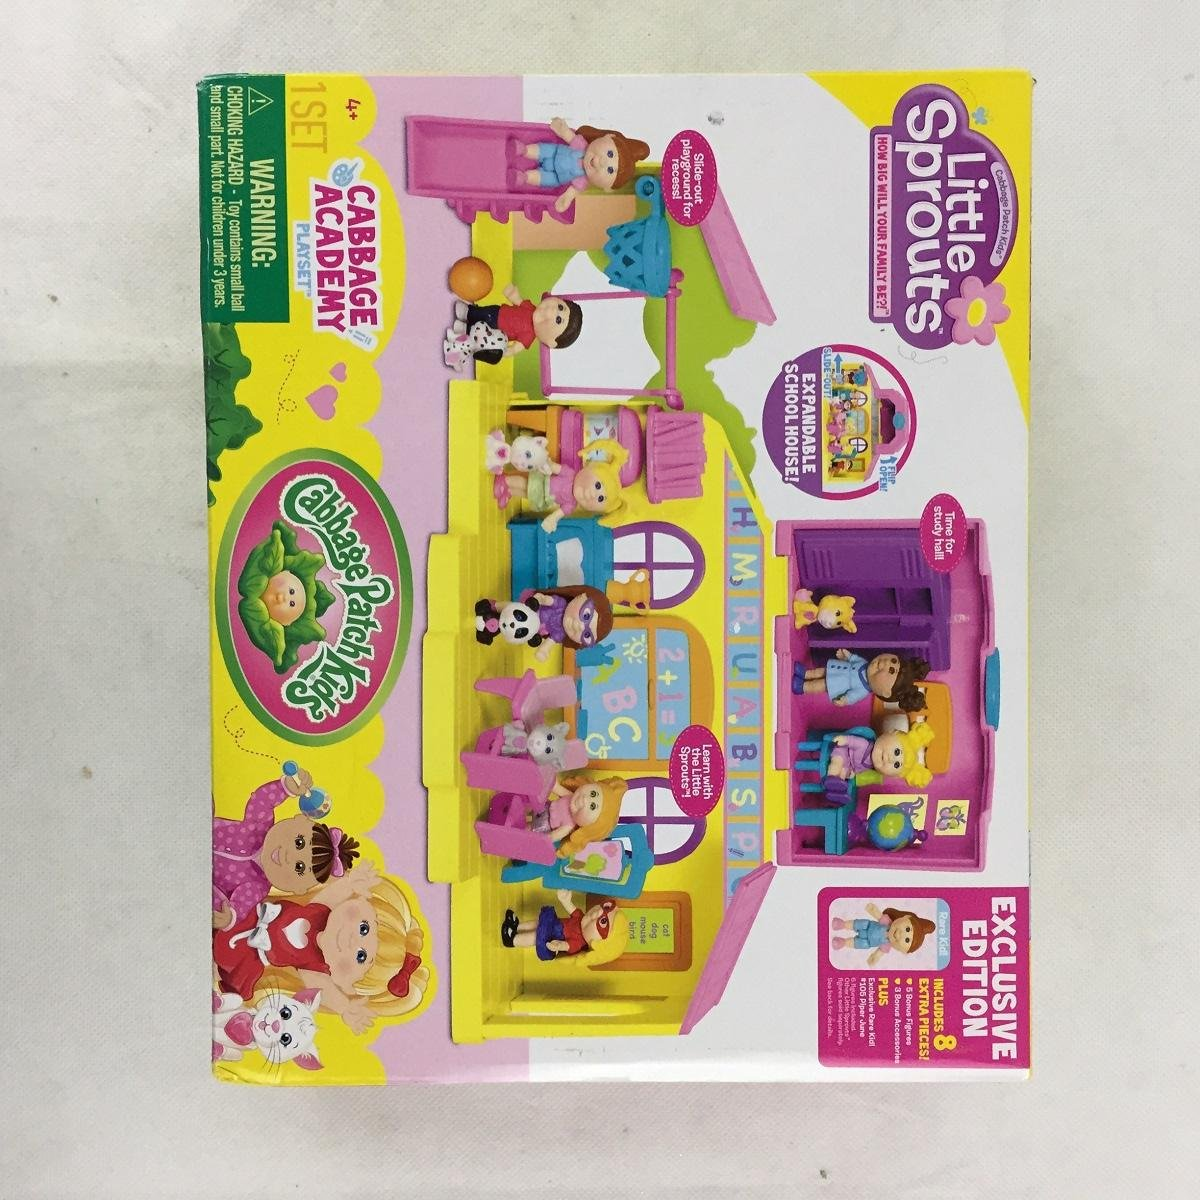 Cabbage Patch Kids Little Sprouts Cabbage Academyボーナスセット B077X7XZNX